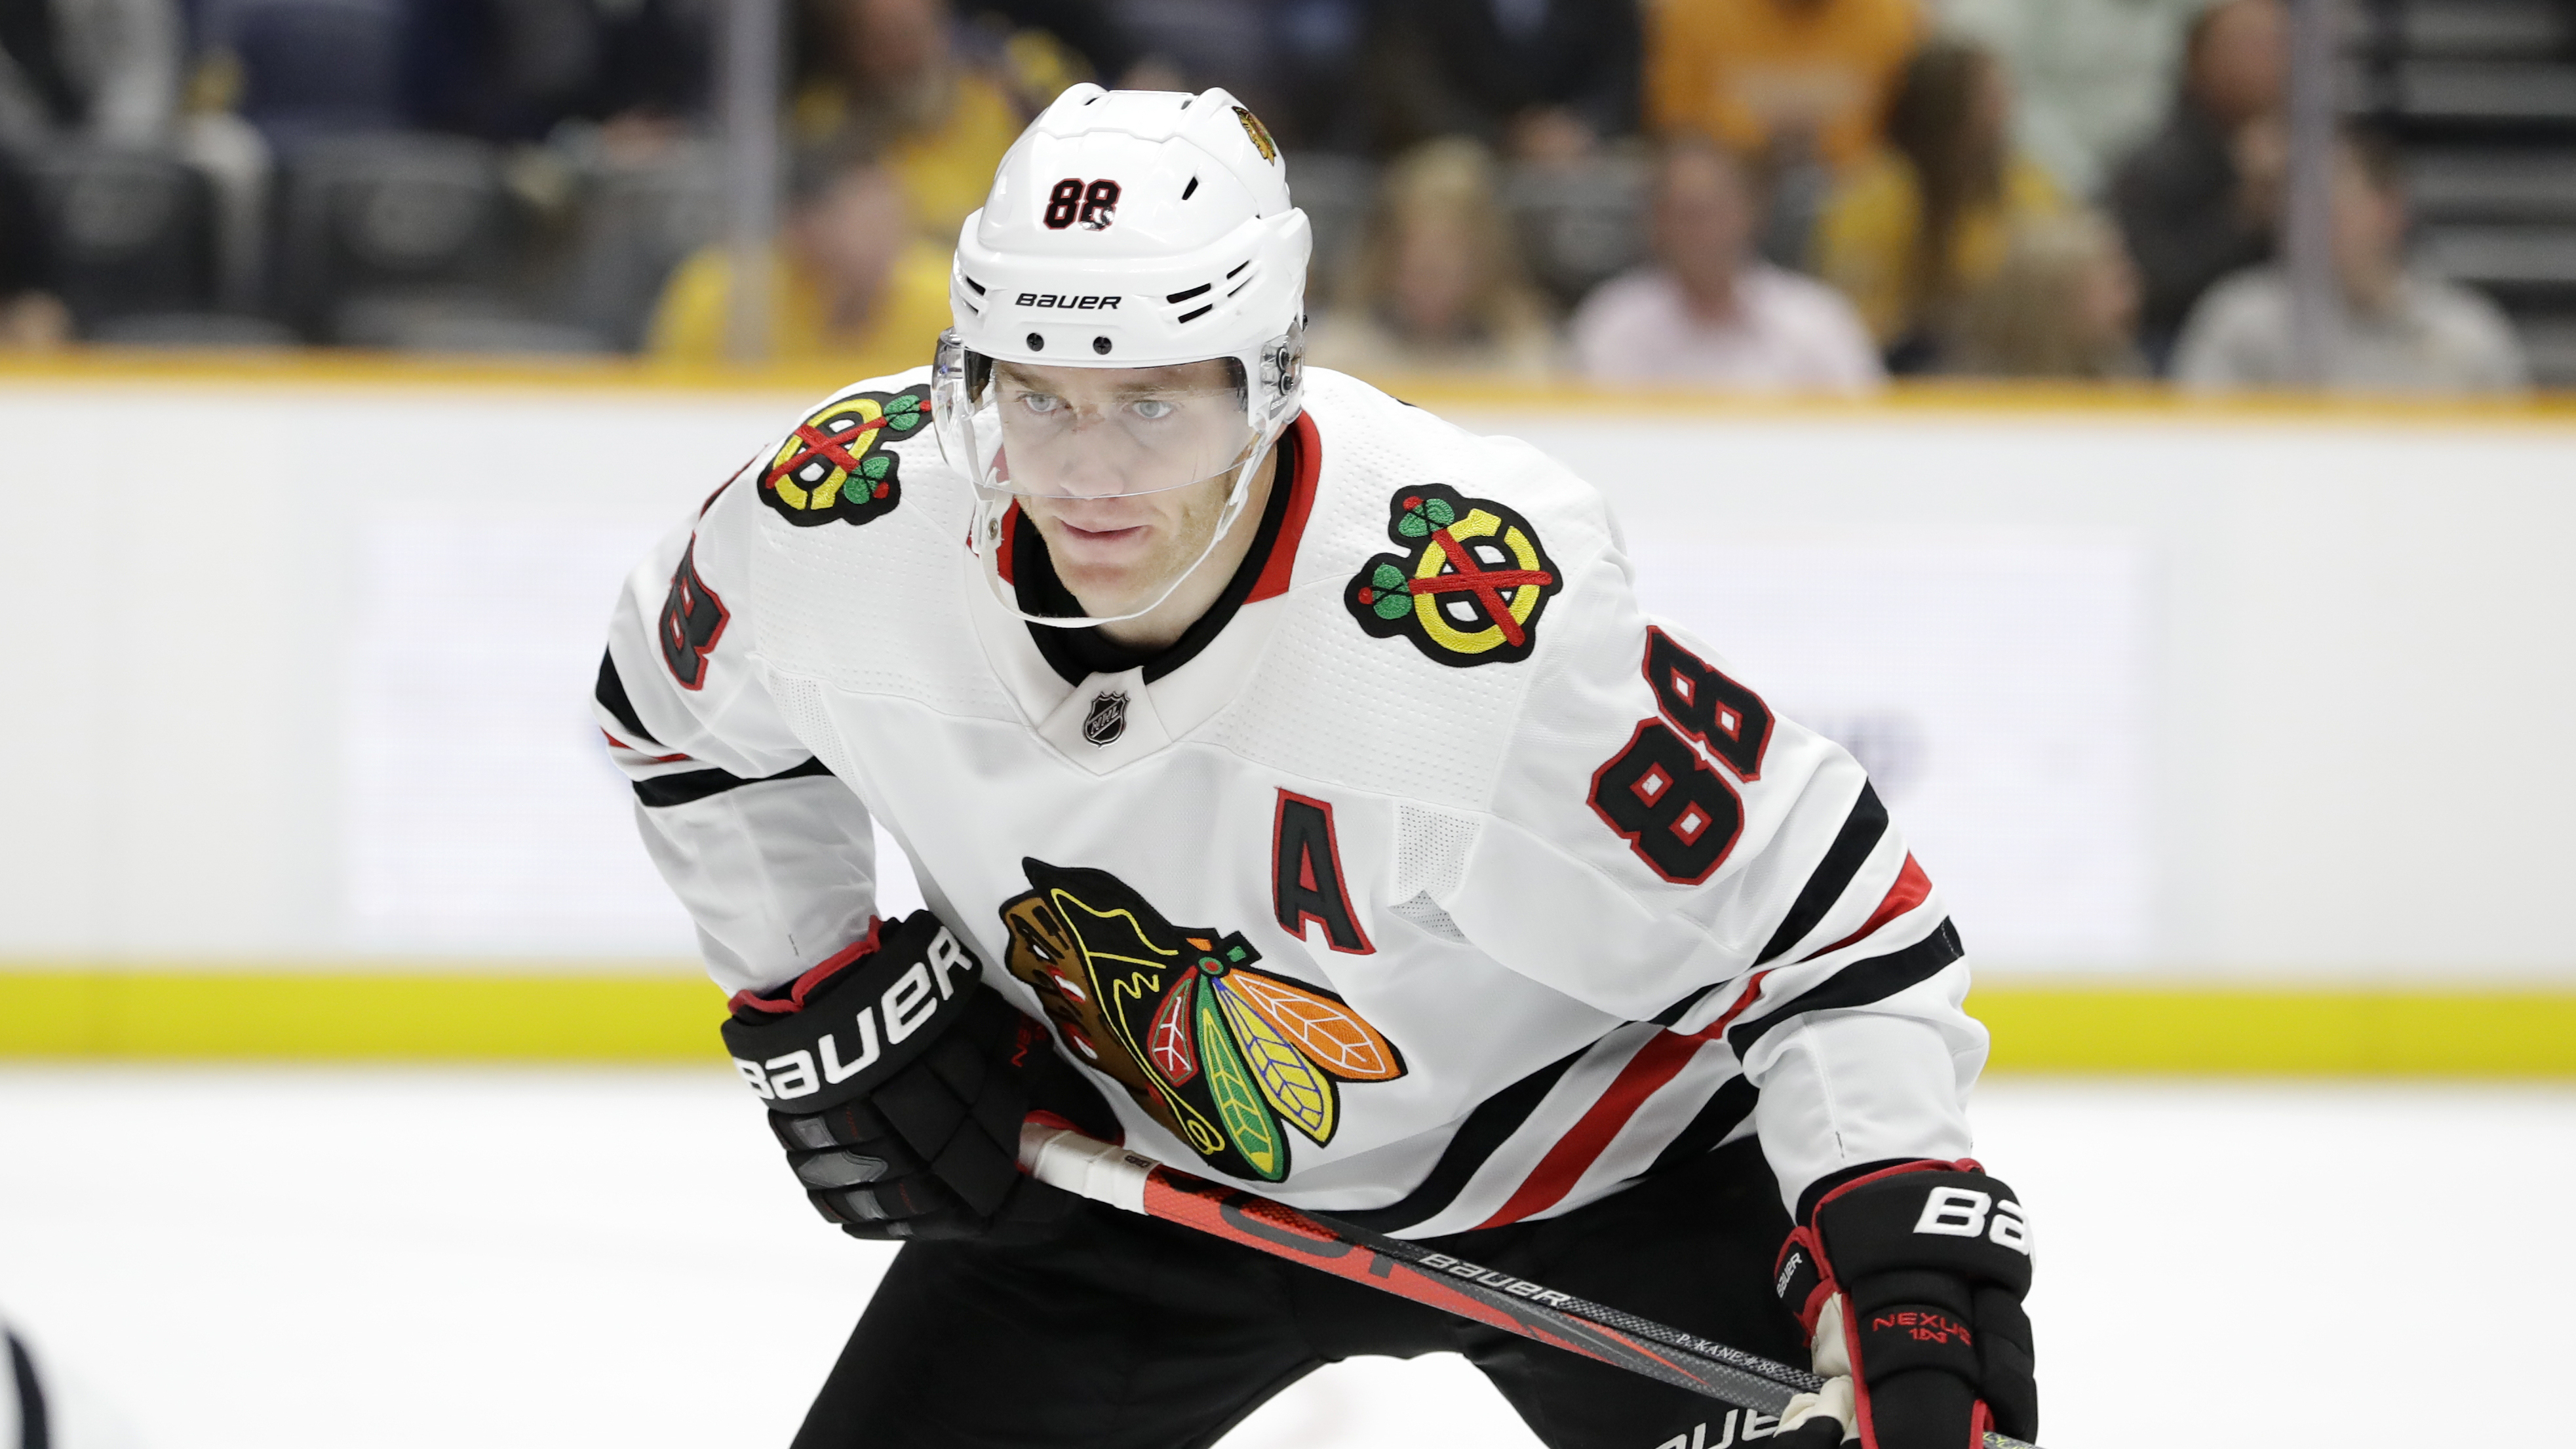 Patrick Kane has tallied a solid nine points in 11 games so far, but the rest of the Blackhawks' core hasn't been so productive.